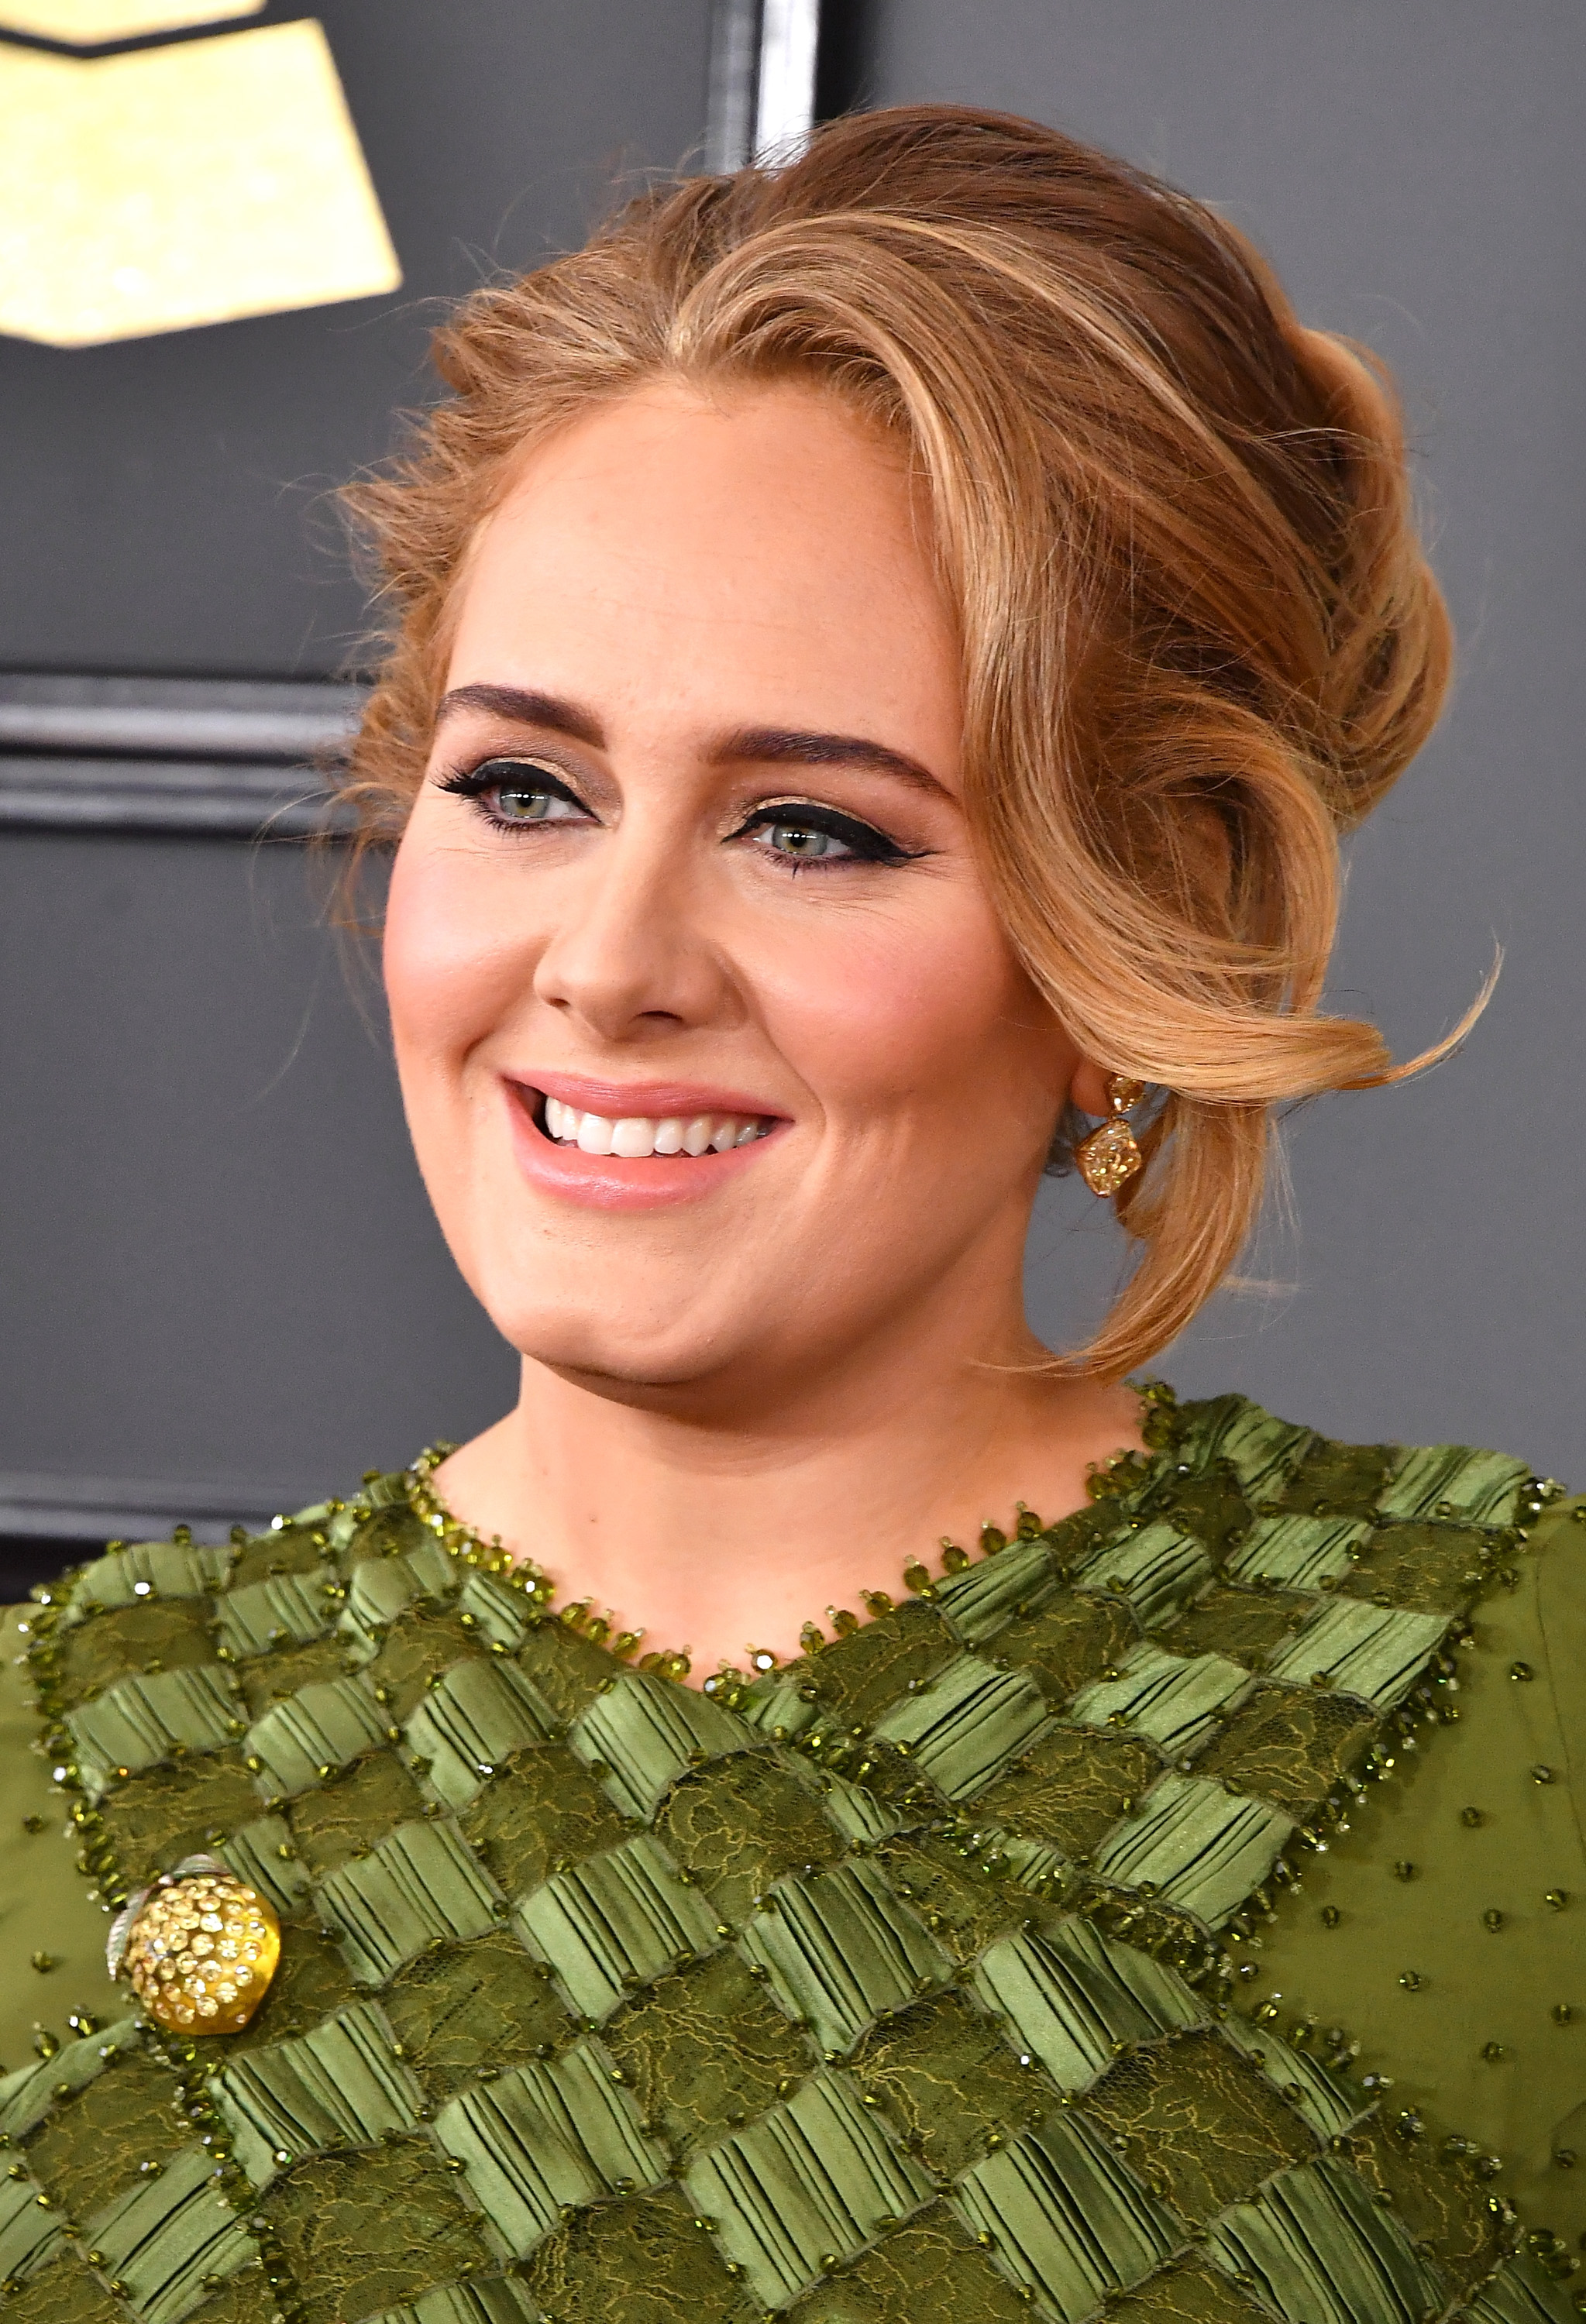 OMG Adele's Grammys dress is the lushest green we've seen in forever